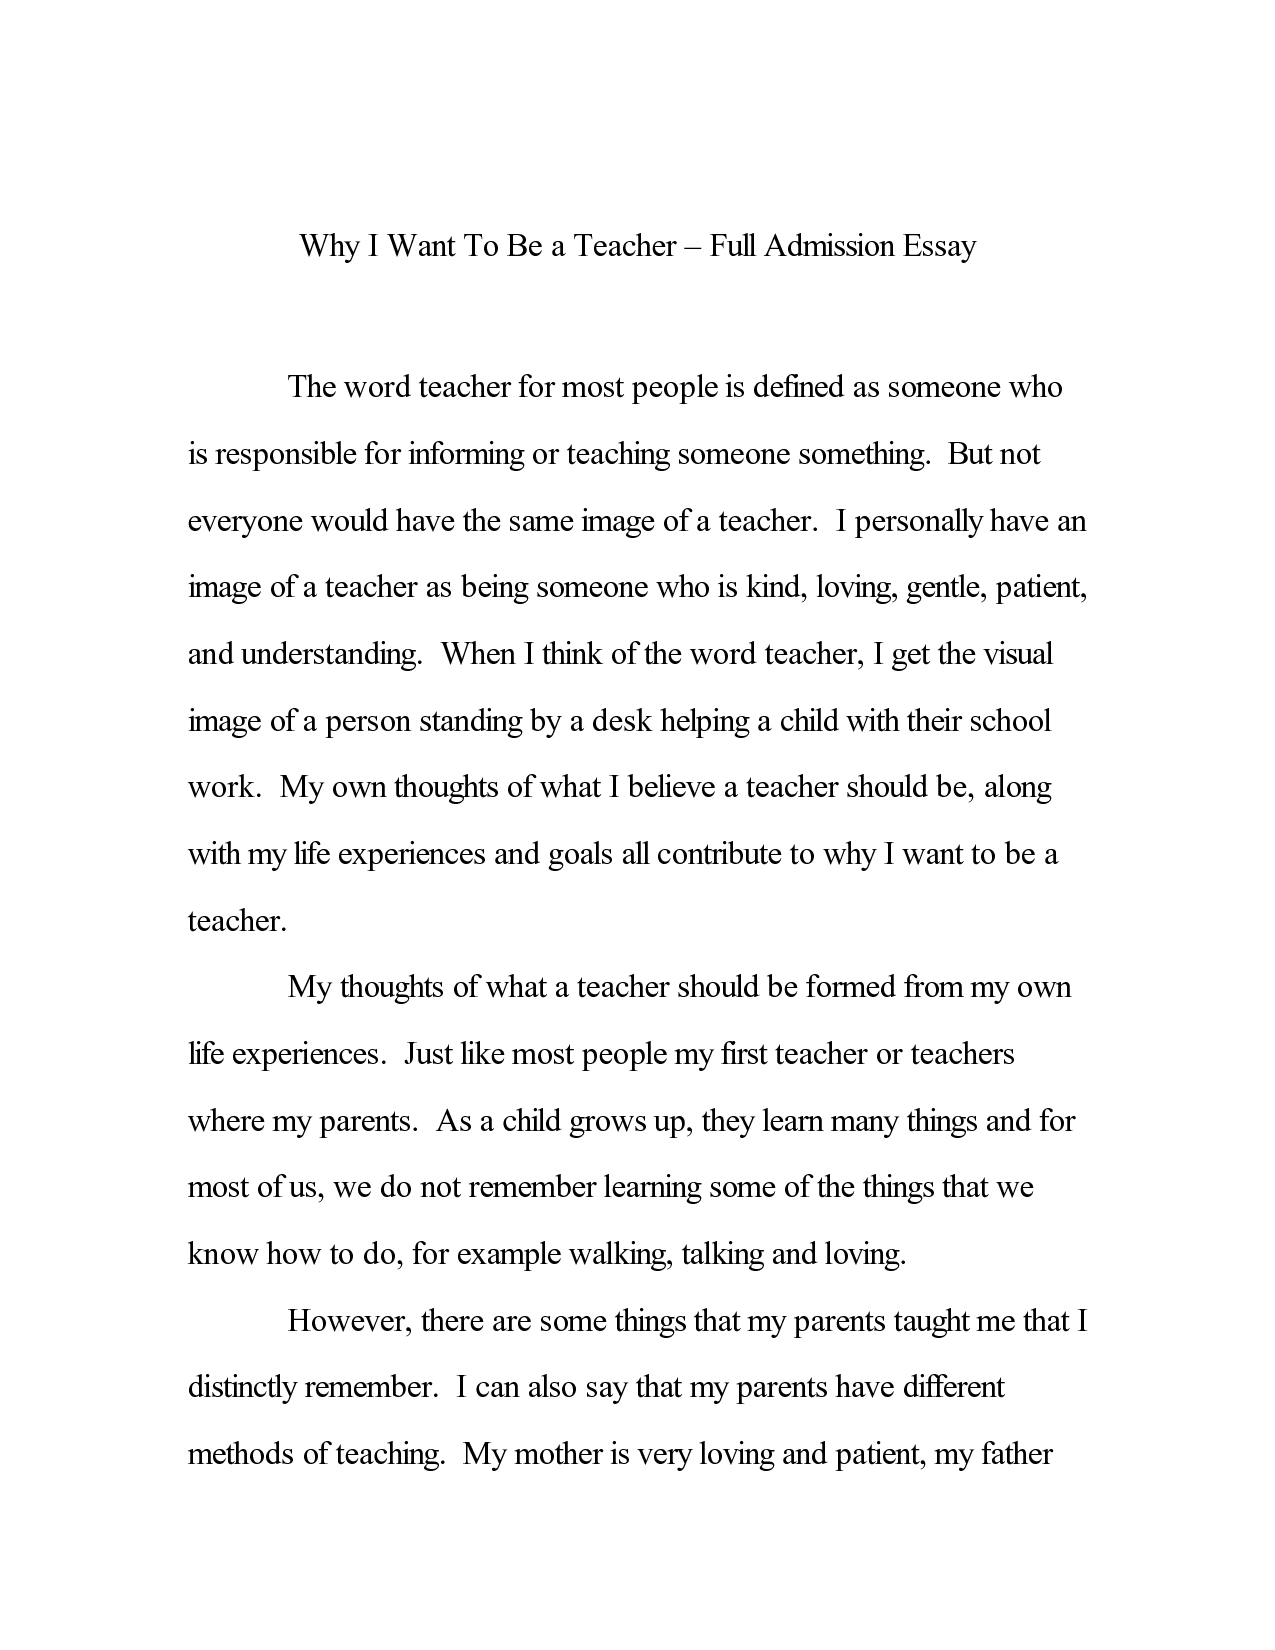 005 College Application Essay Example Writings And Essays What Is Personal For Ideal Vistalist Co I You The Format Topic Prompt Excellent Help Examples 500 Words Writing Workshop Pdf Full